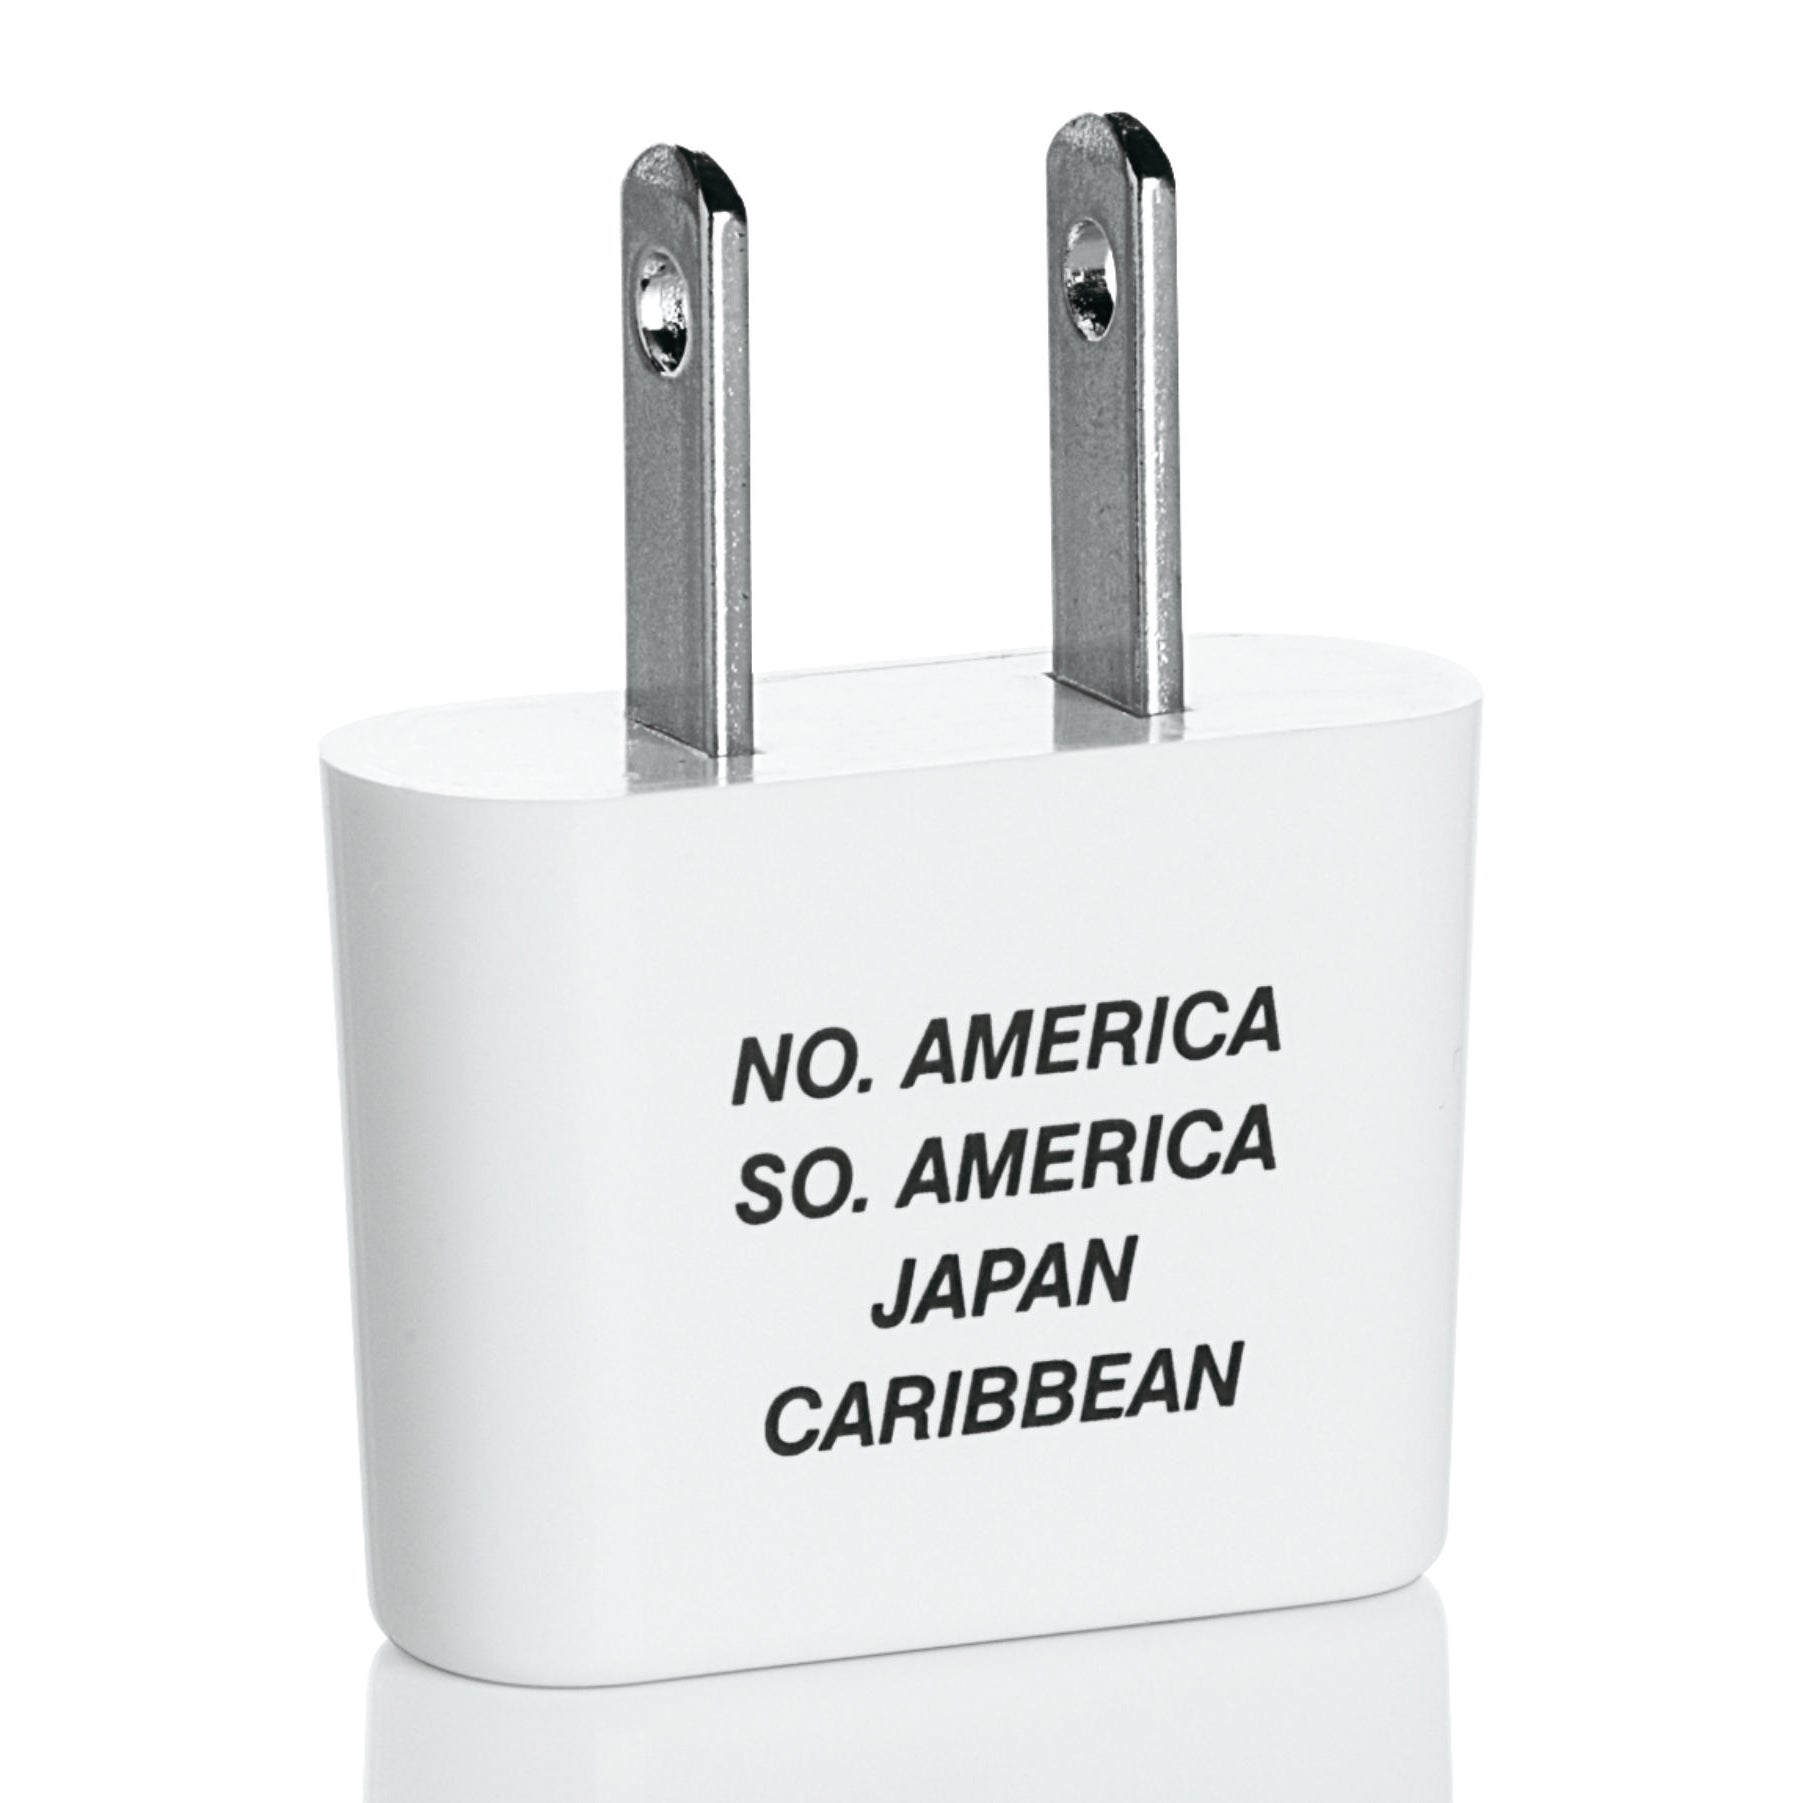 Travel Smart by Conair NW3C White U.S. Adapter Plug